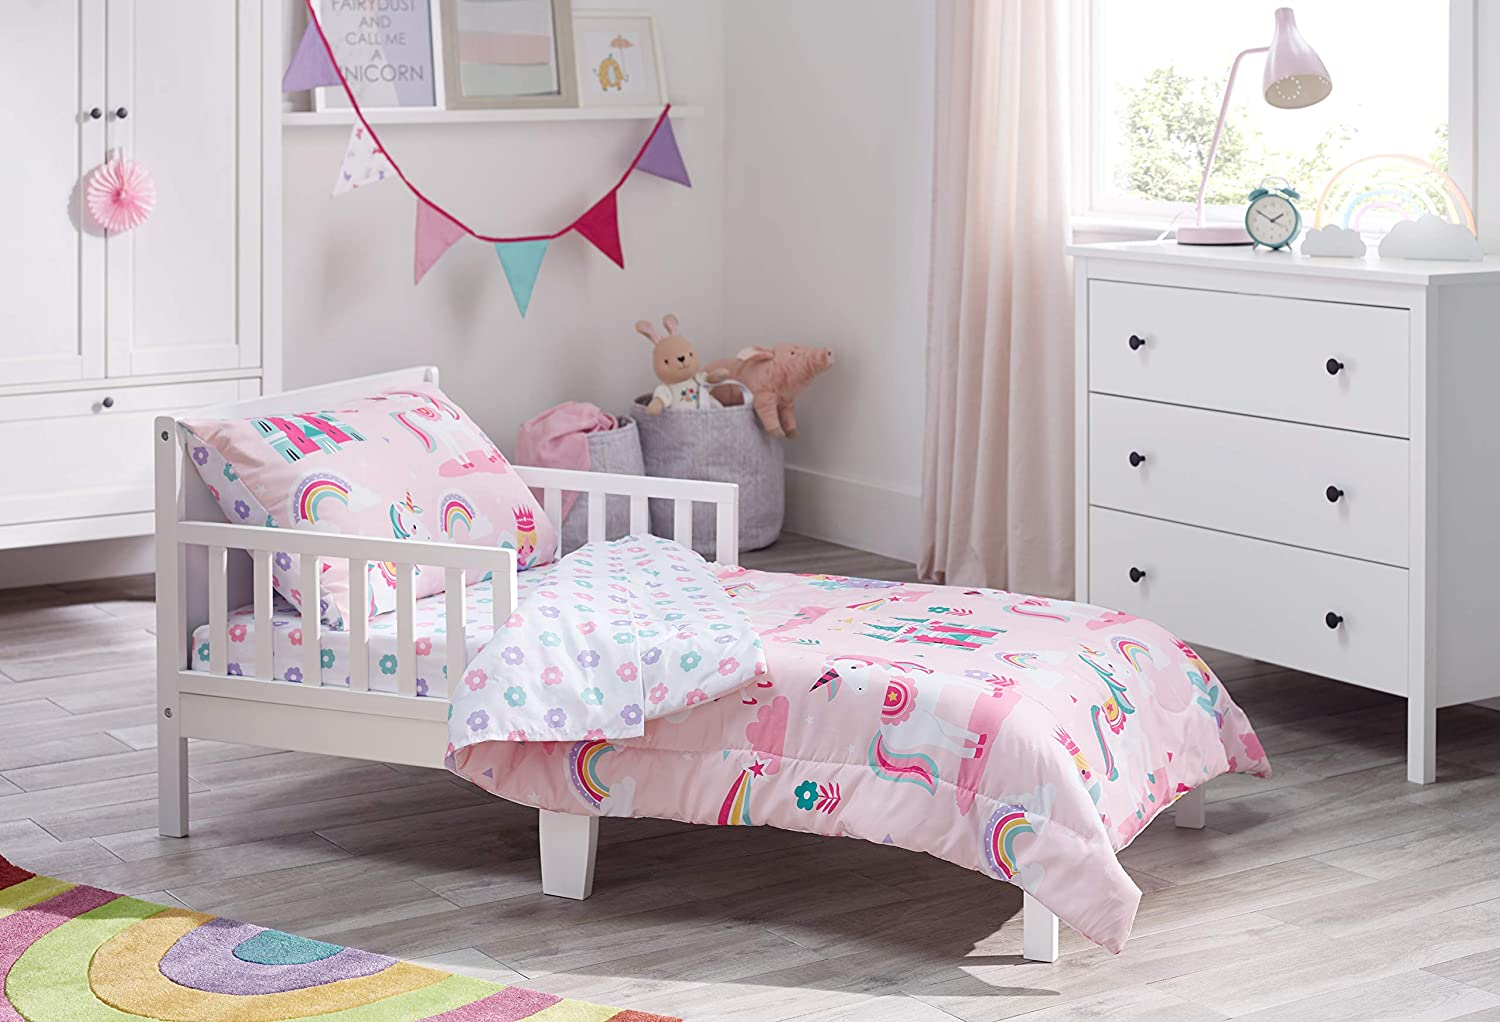 Bloomsbury Mill 4 Piece Toddler Comforter Set Magic Unicorn Fairy Princess Enchanted Castle Pink Kids Bedding Set Kitchen Dining